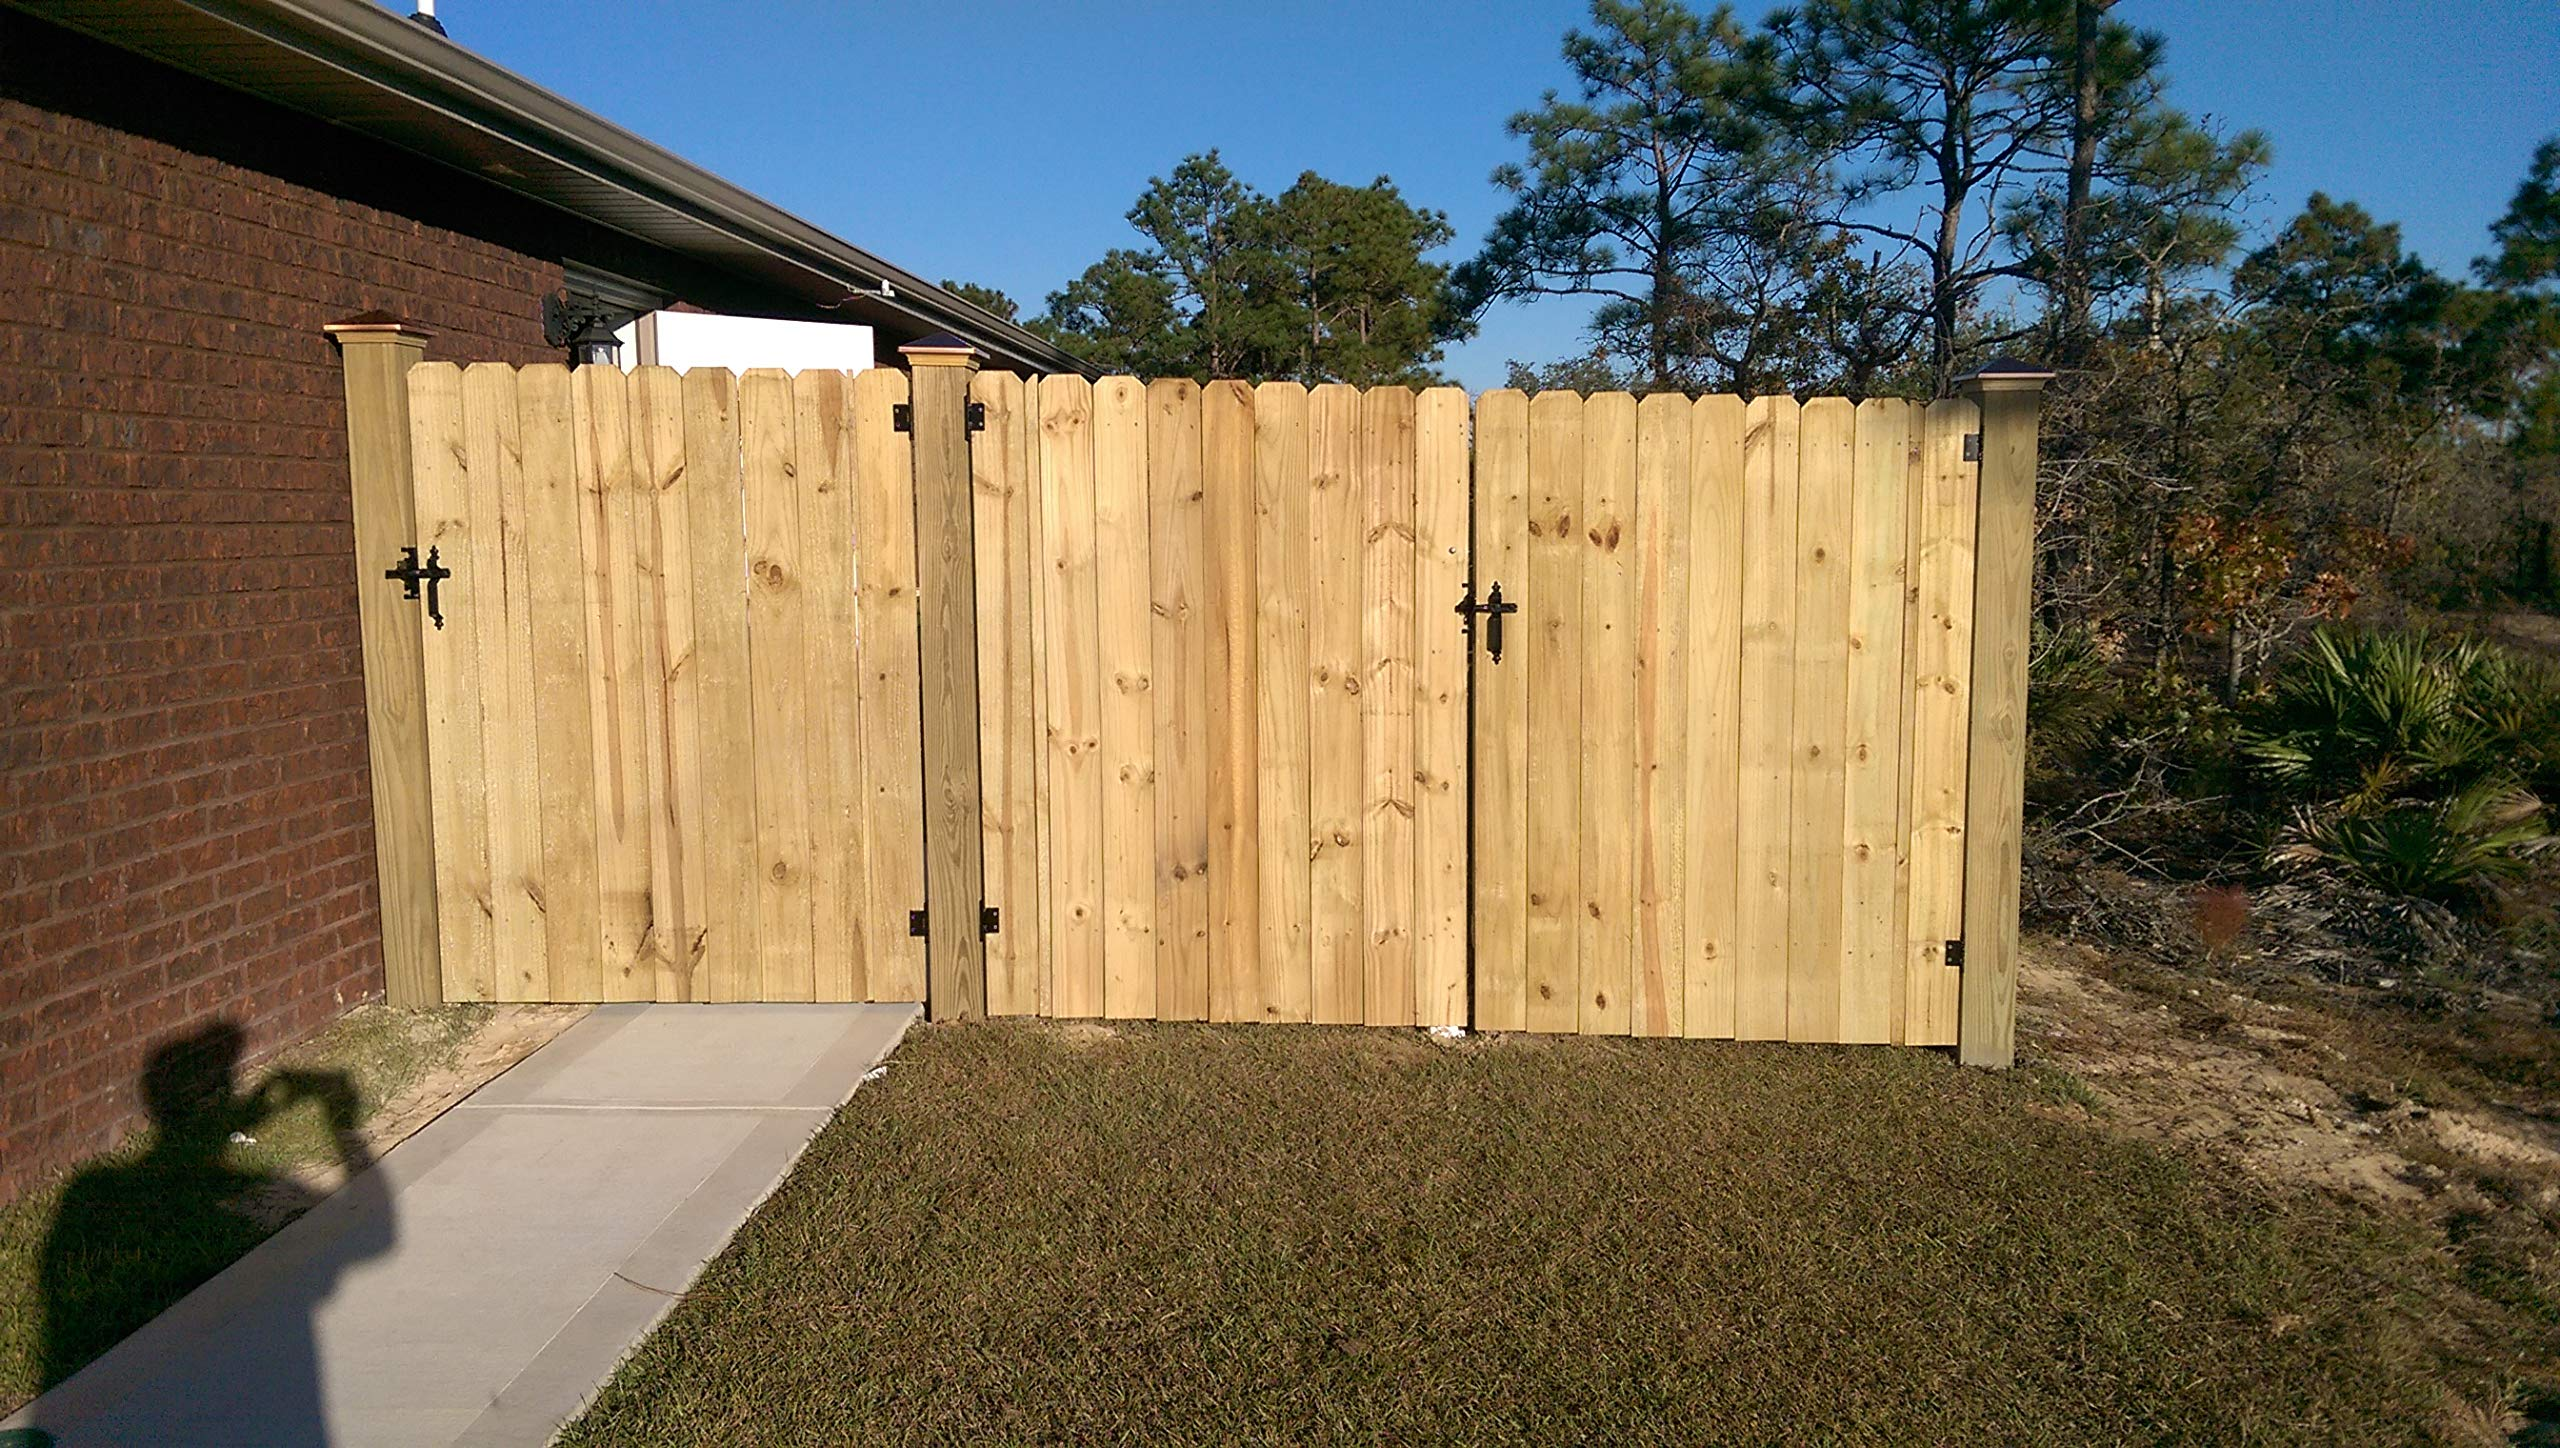 Universal Gate Hinge - Build A Wood Gate The Easy Way + You Can Choose Inward Or Outward Swing Direction - Build New Or Repair Existing Gates